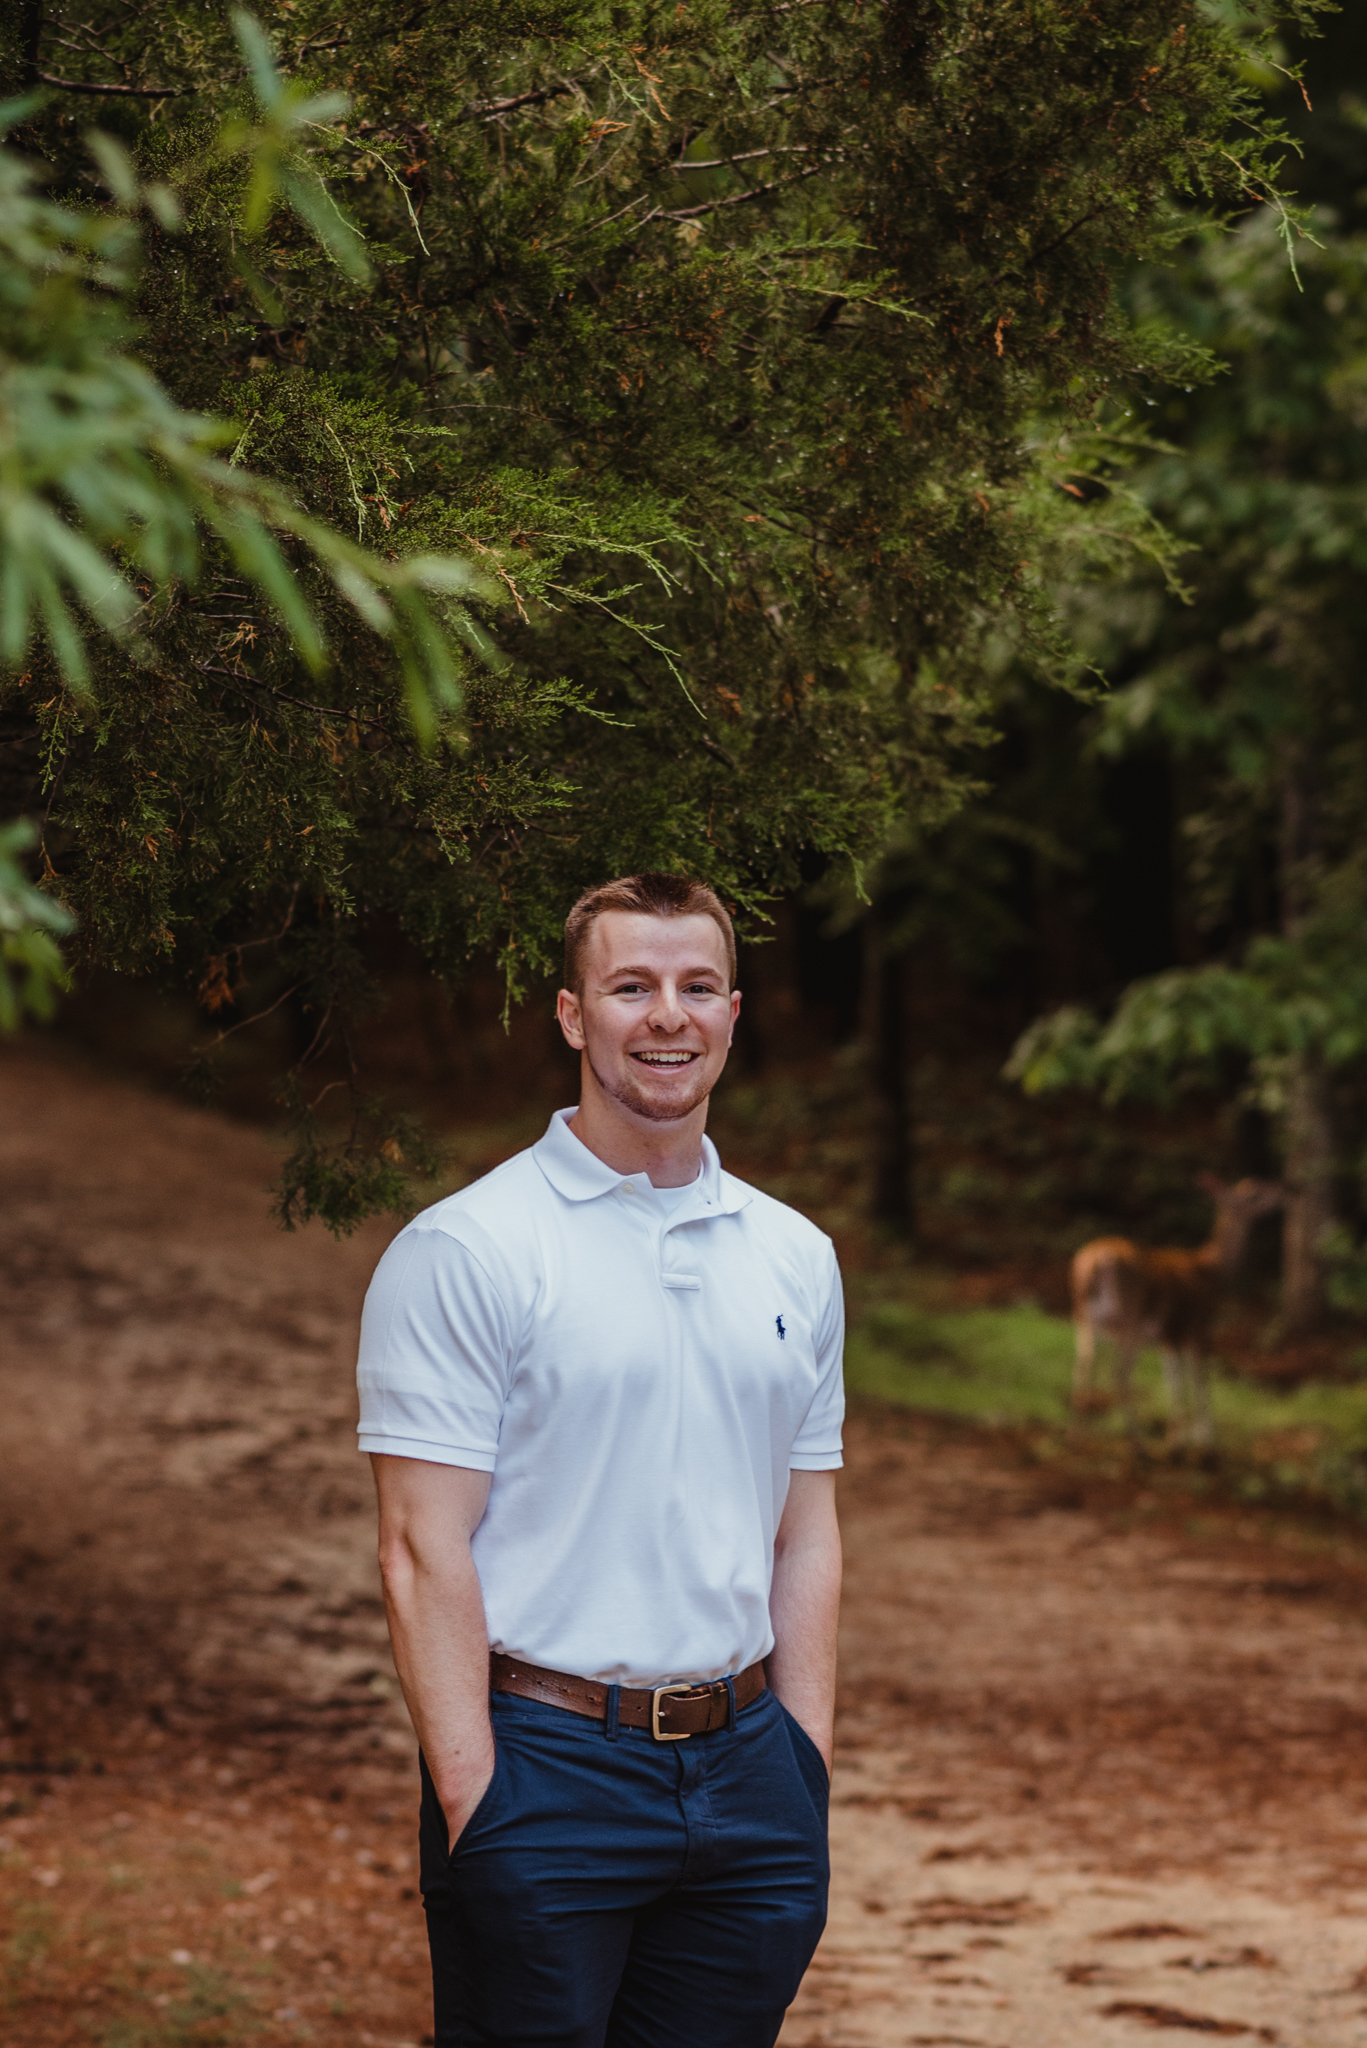 Harrison, with a deer behind him, had his senior portraits done at Durant Nature Preserve in Raleigh, NC by Rose Trail Images.